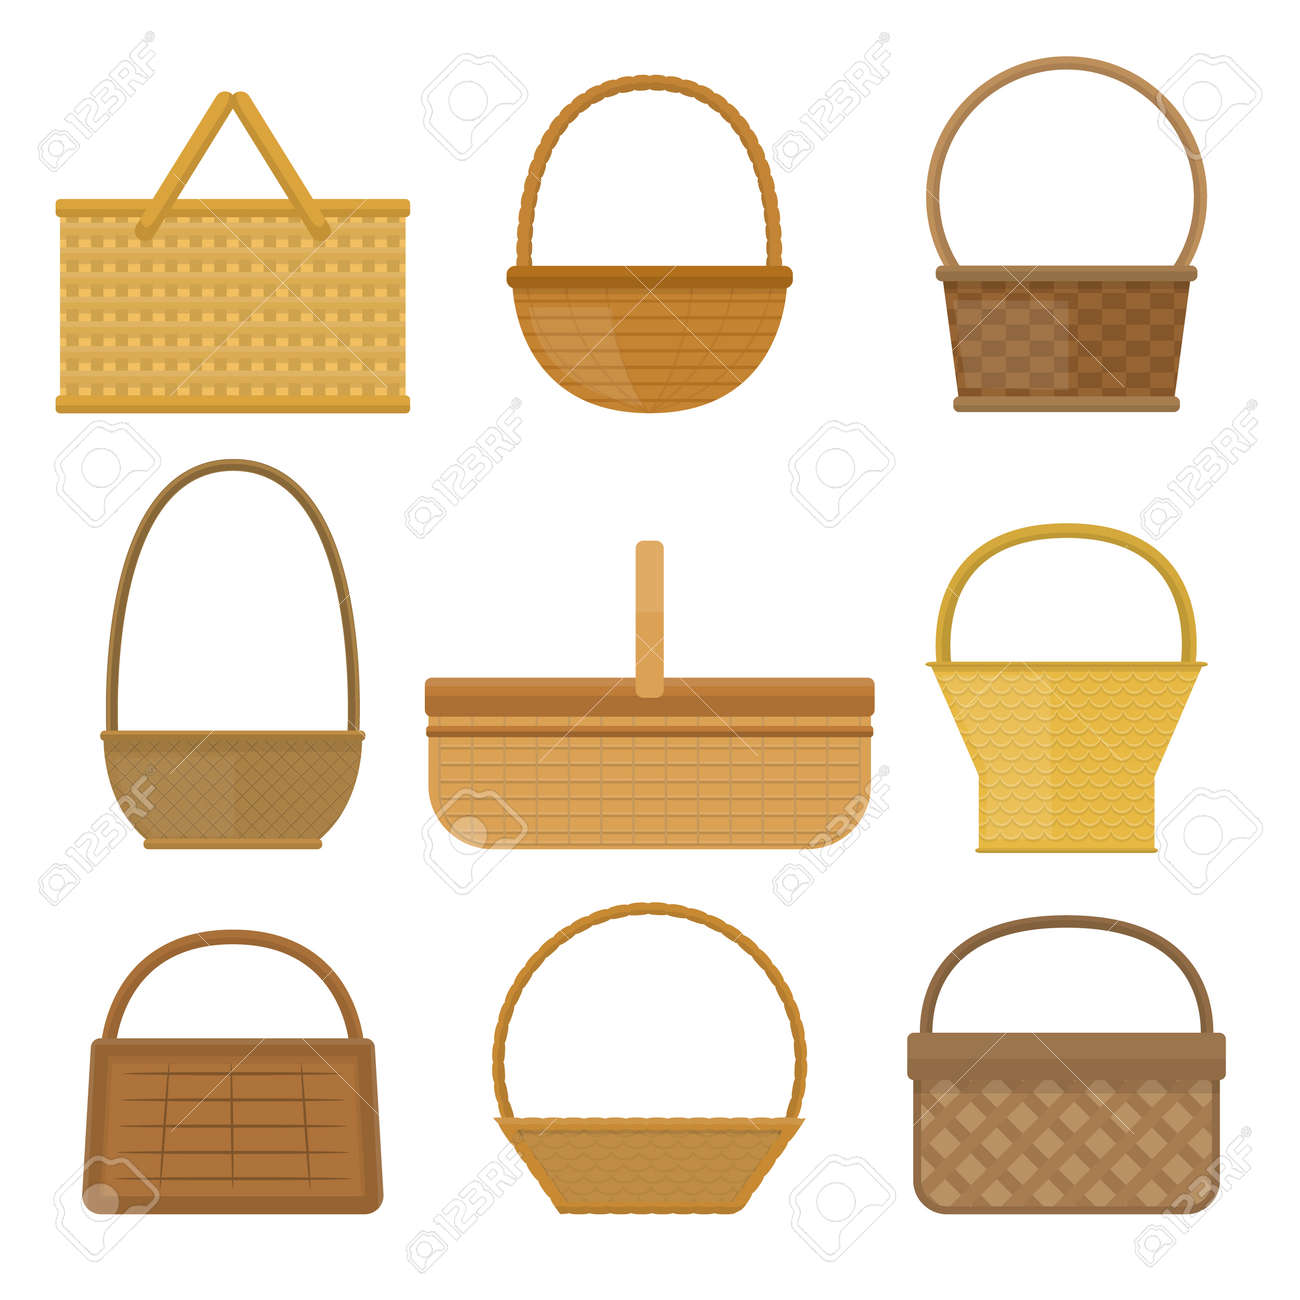 Empty Baskets Set Isolated On White Background Vector Illustration Wicker Picnic Easter